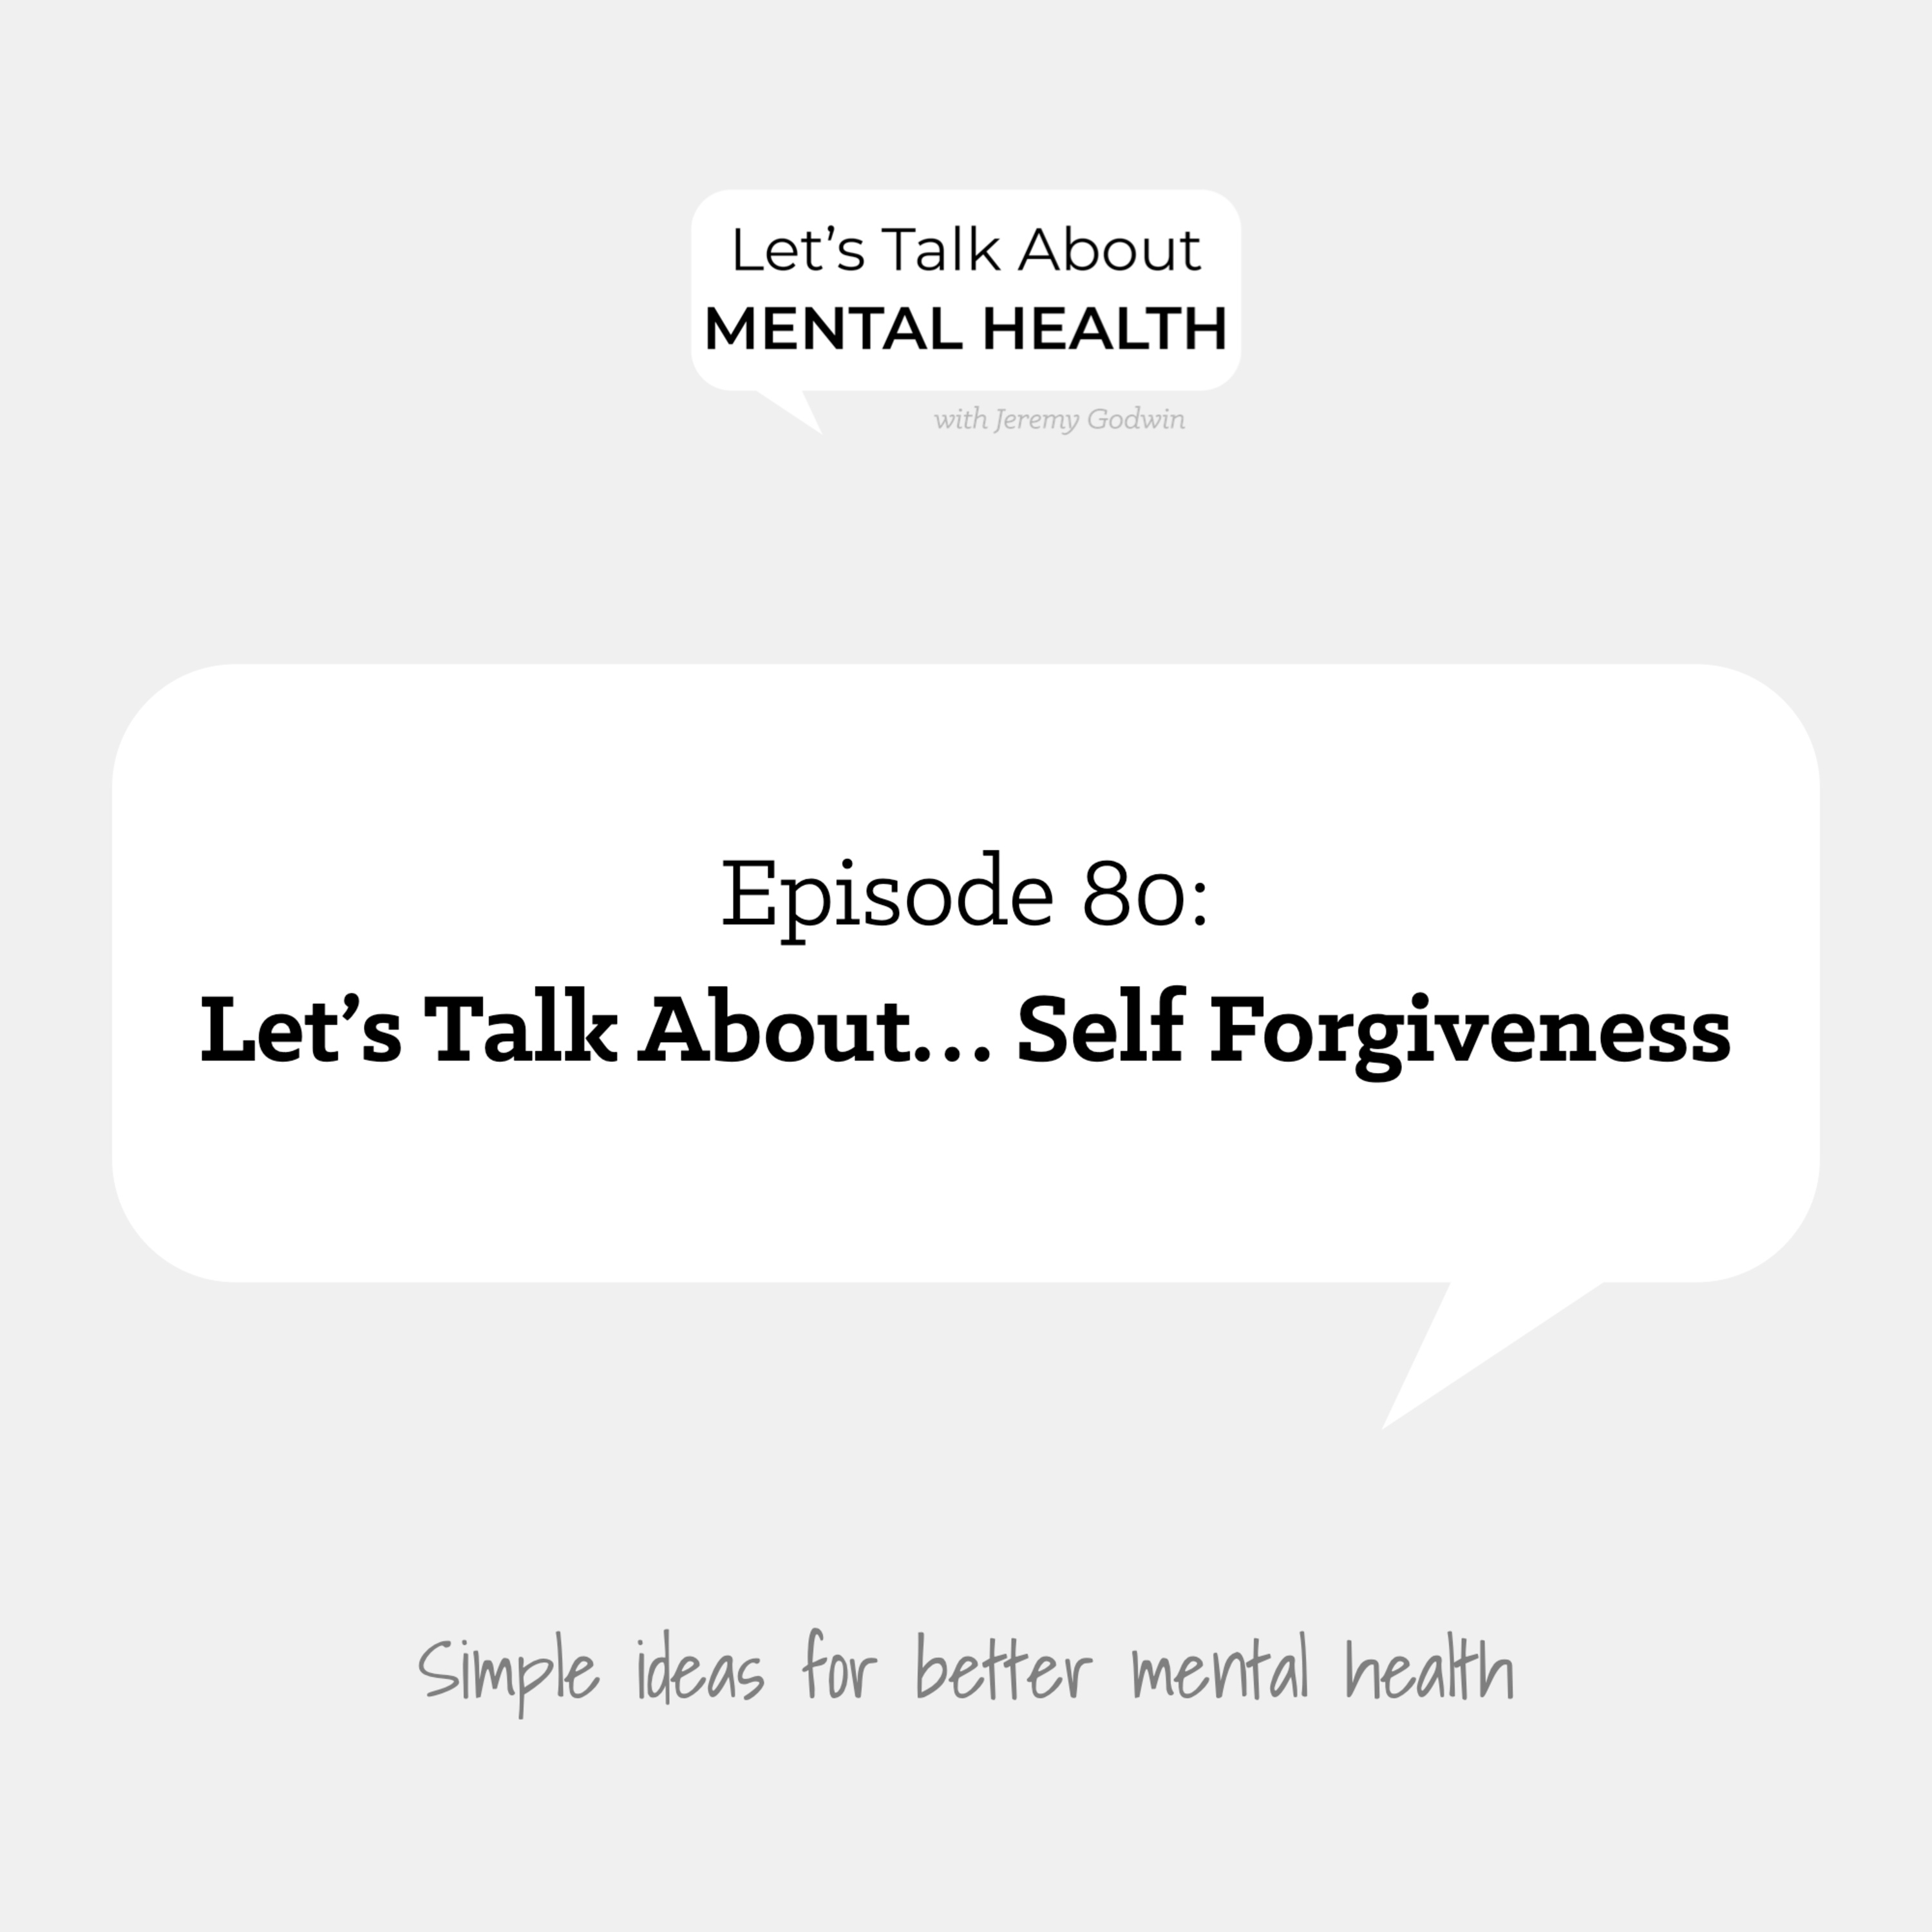 Let's Talk About Mental Health - Let's Talk About... Self Forgiveness